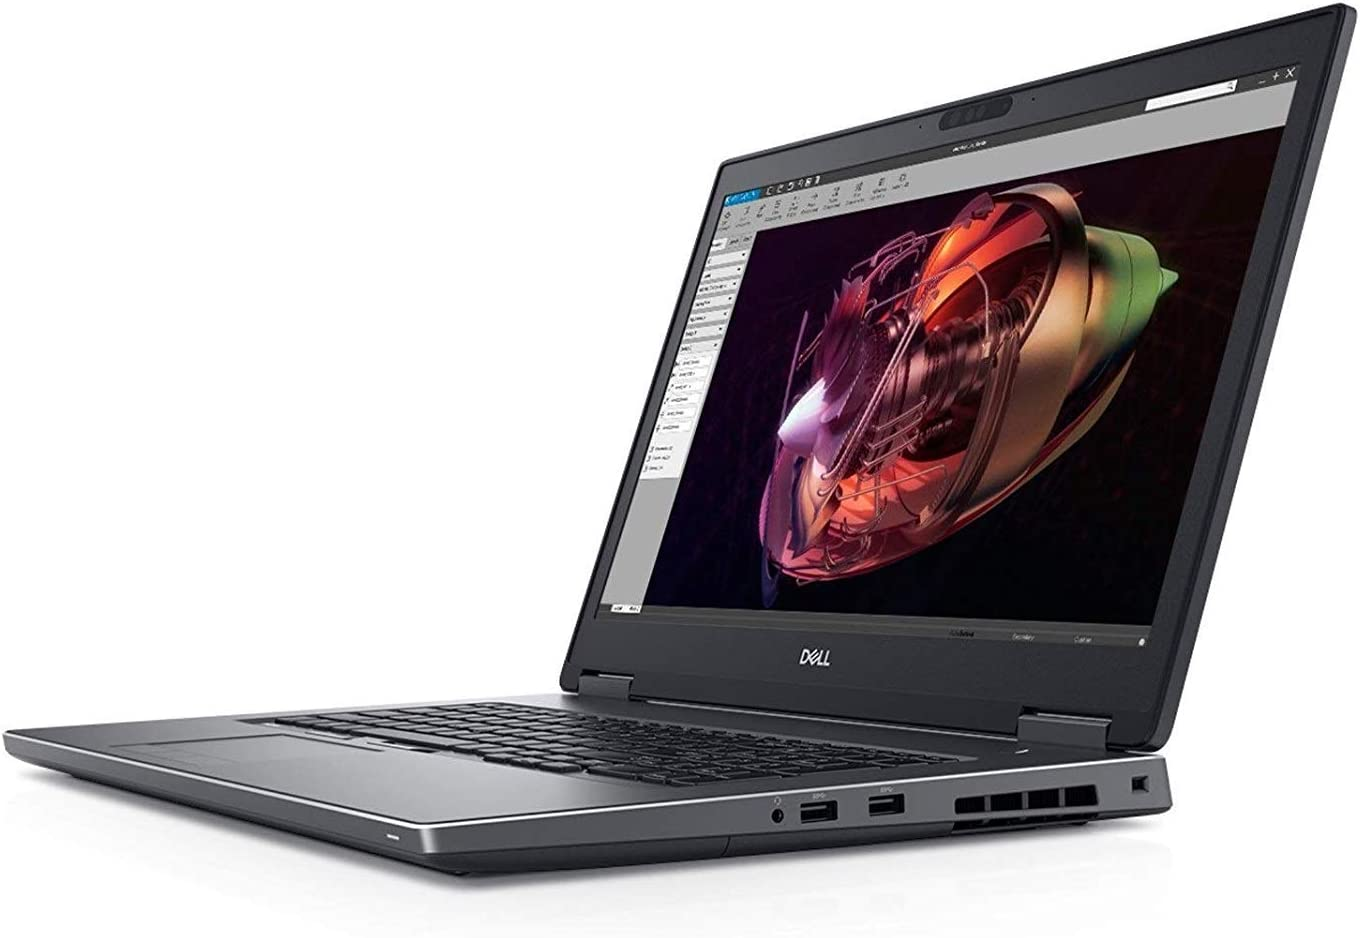 New Dell Precision 7730 The world's most powerful 17